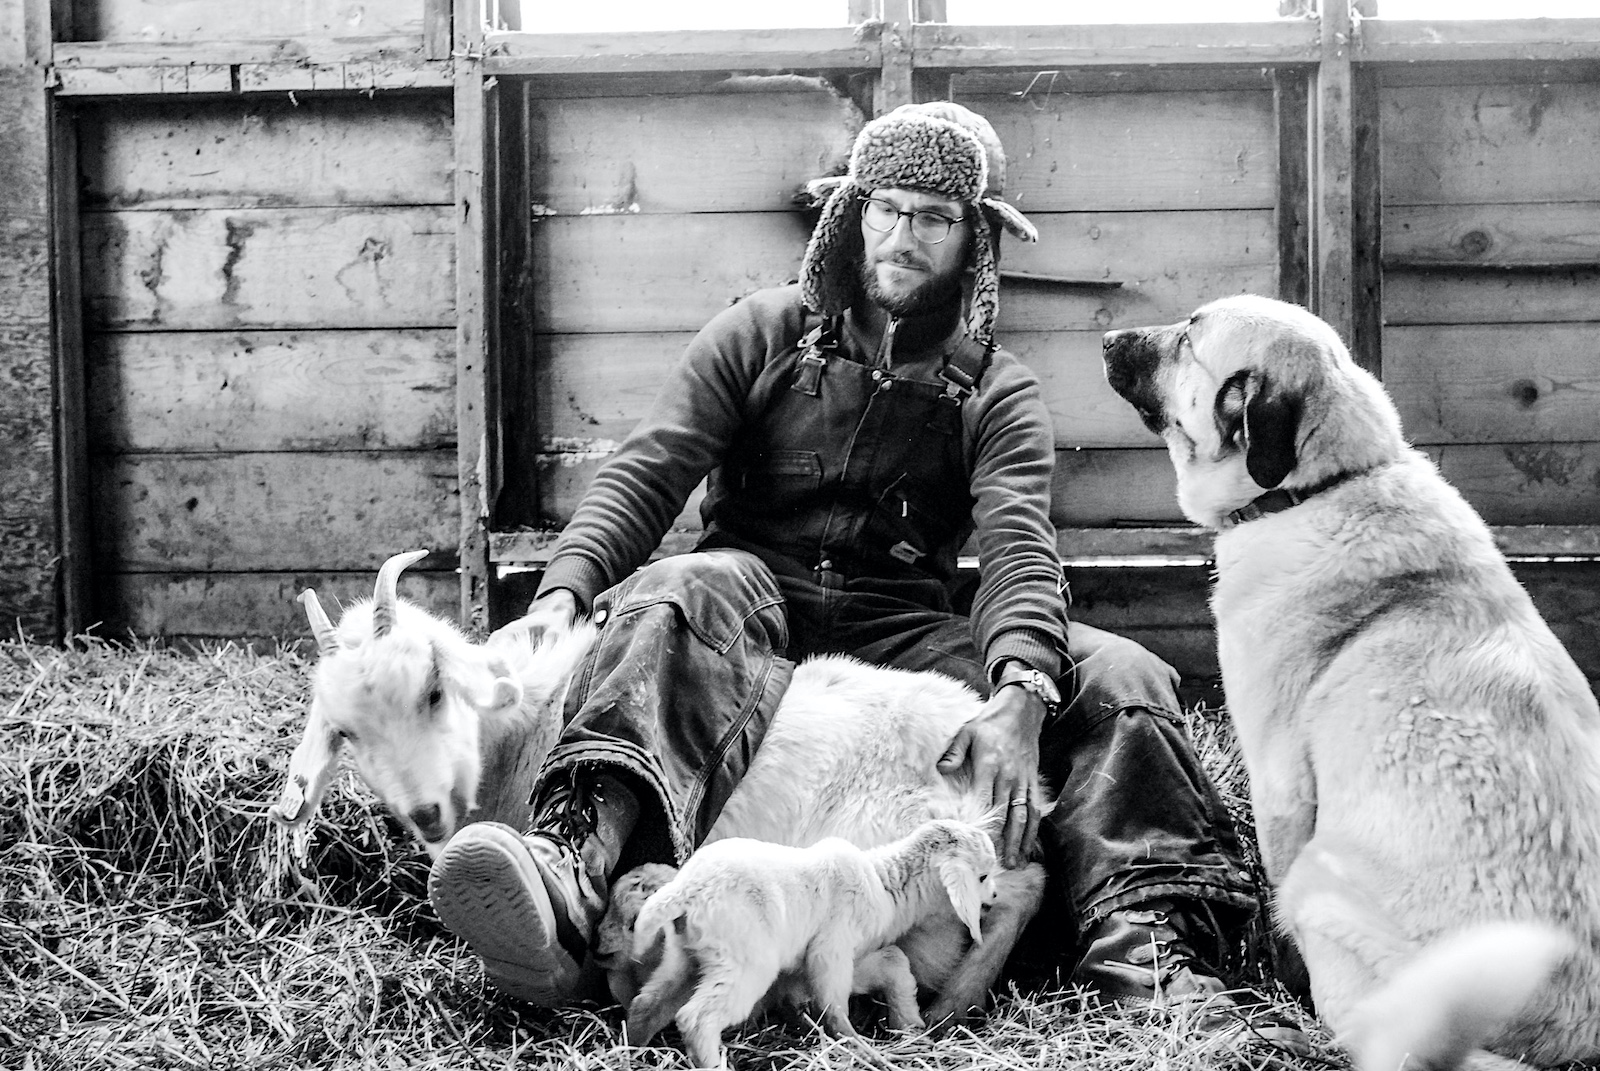 Mike and Goats